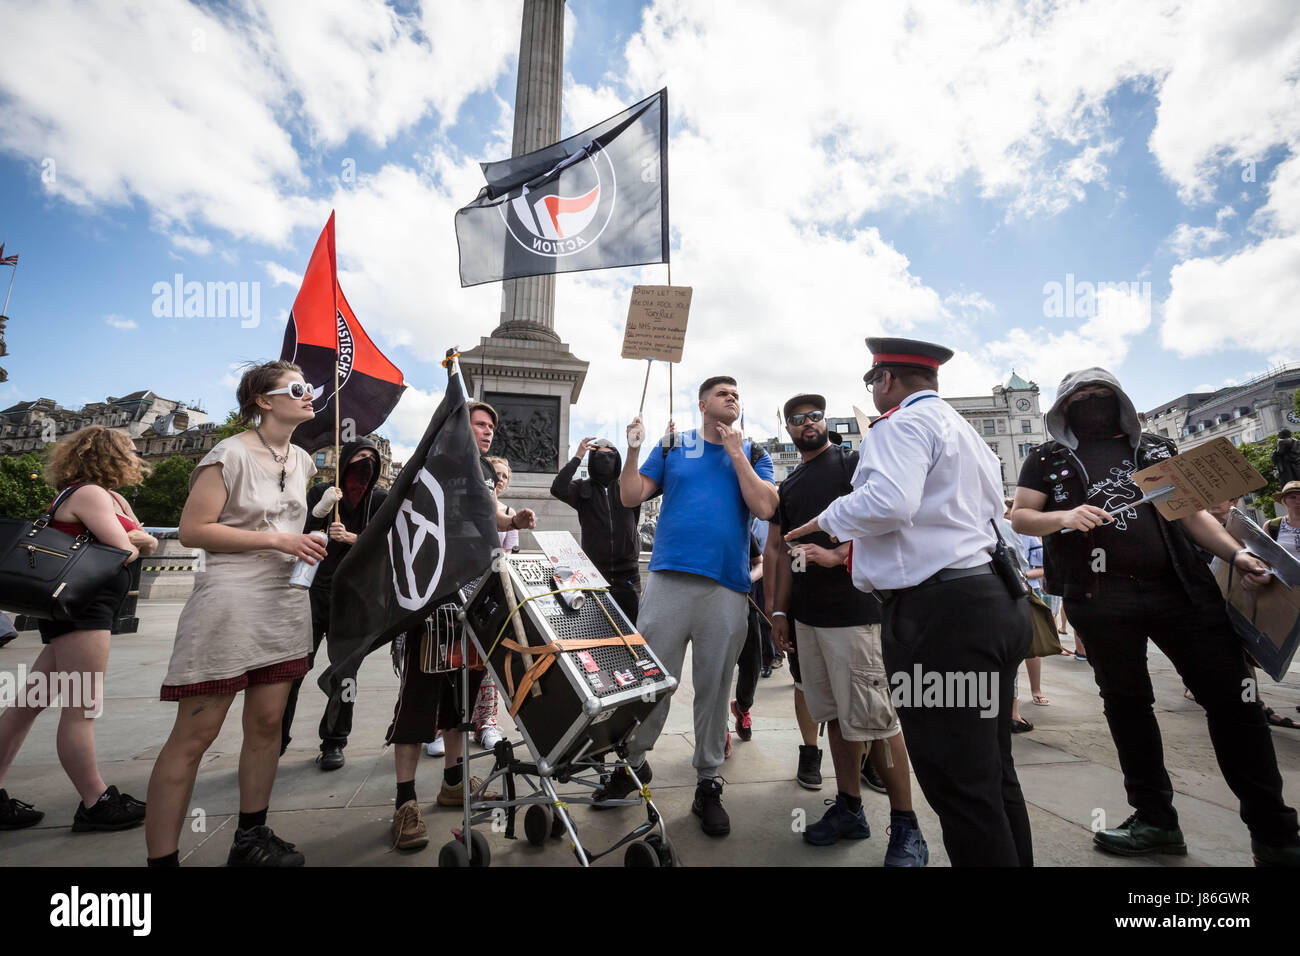 London, UK. 27th May, 2017. A small group of anti-fascists and anarchists march through Whitehall as part of an Stock Photo